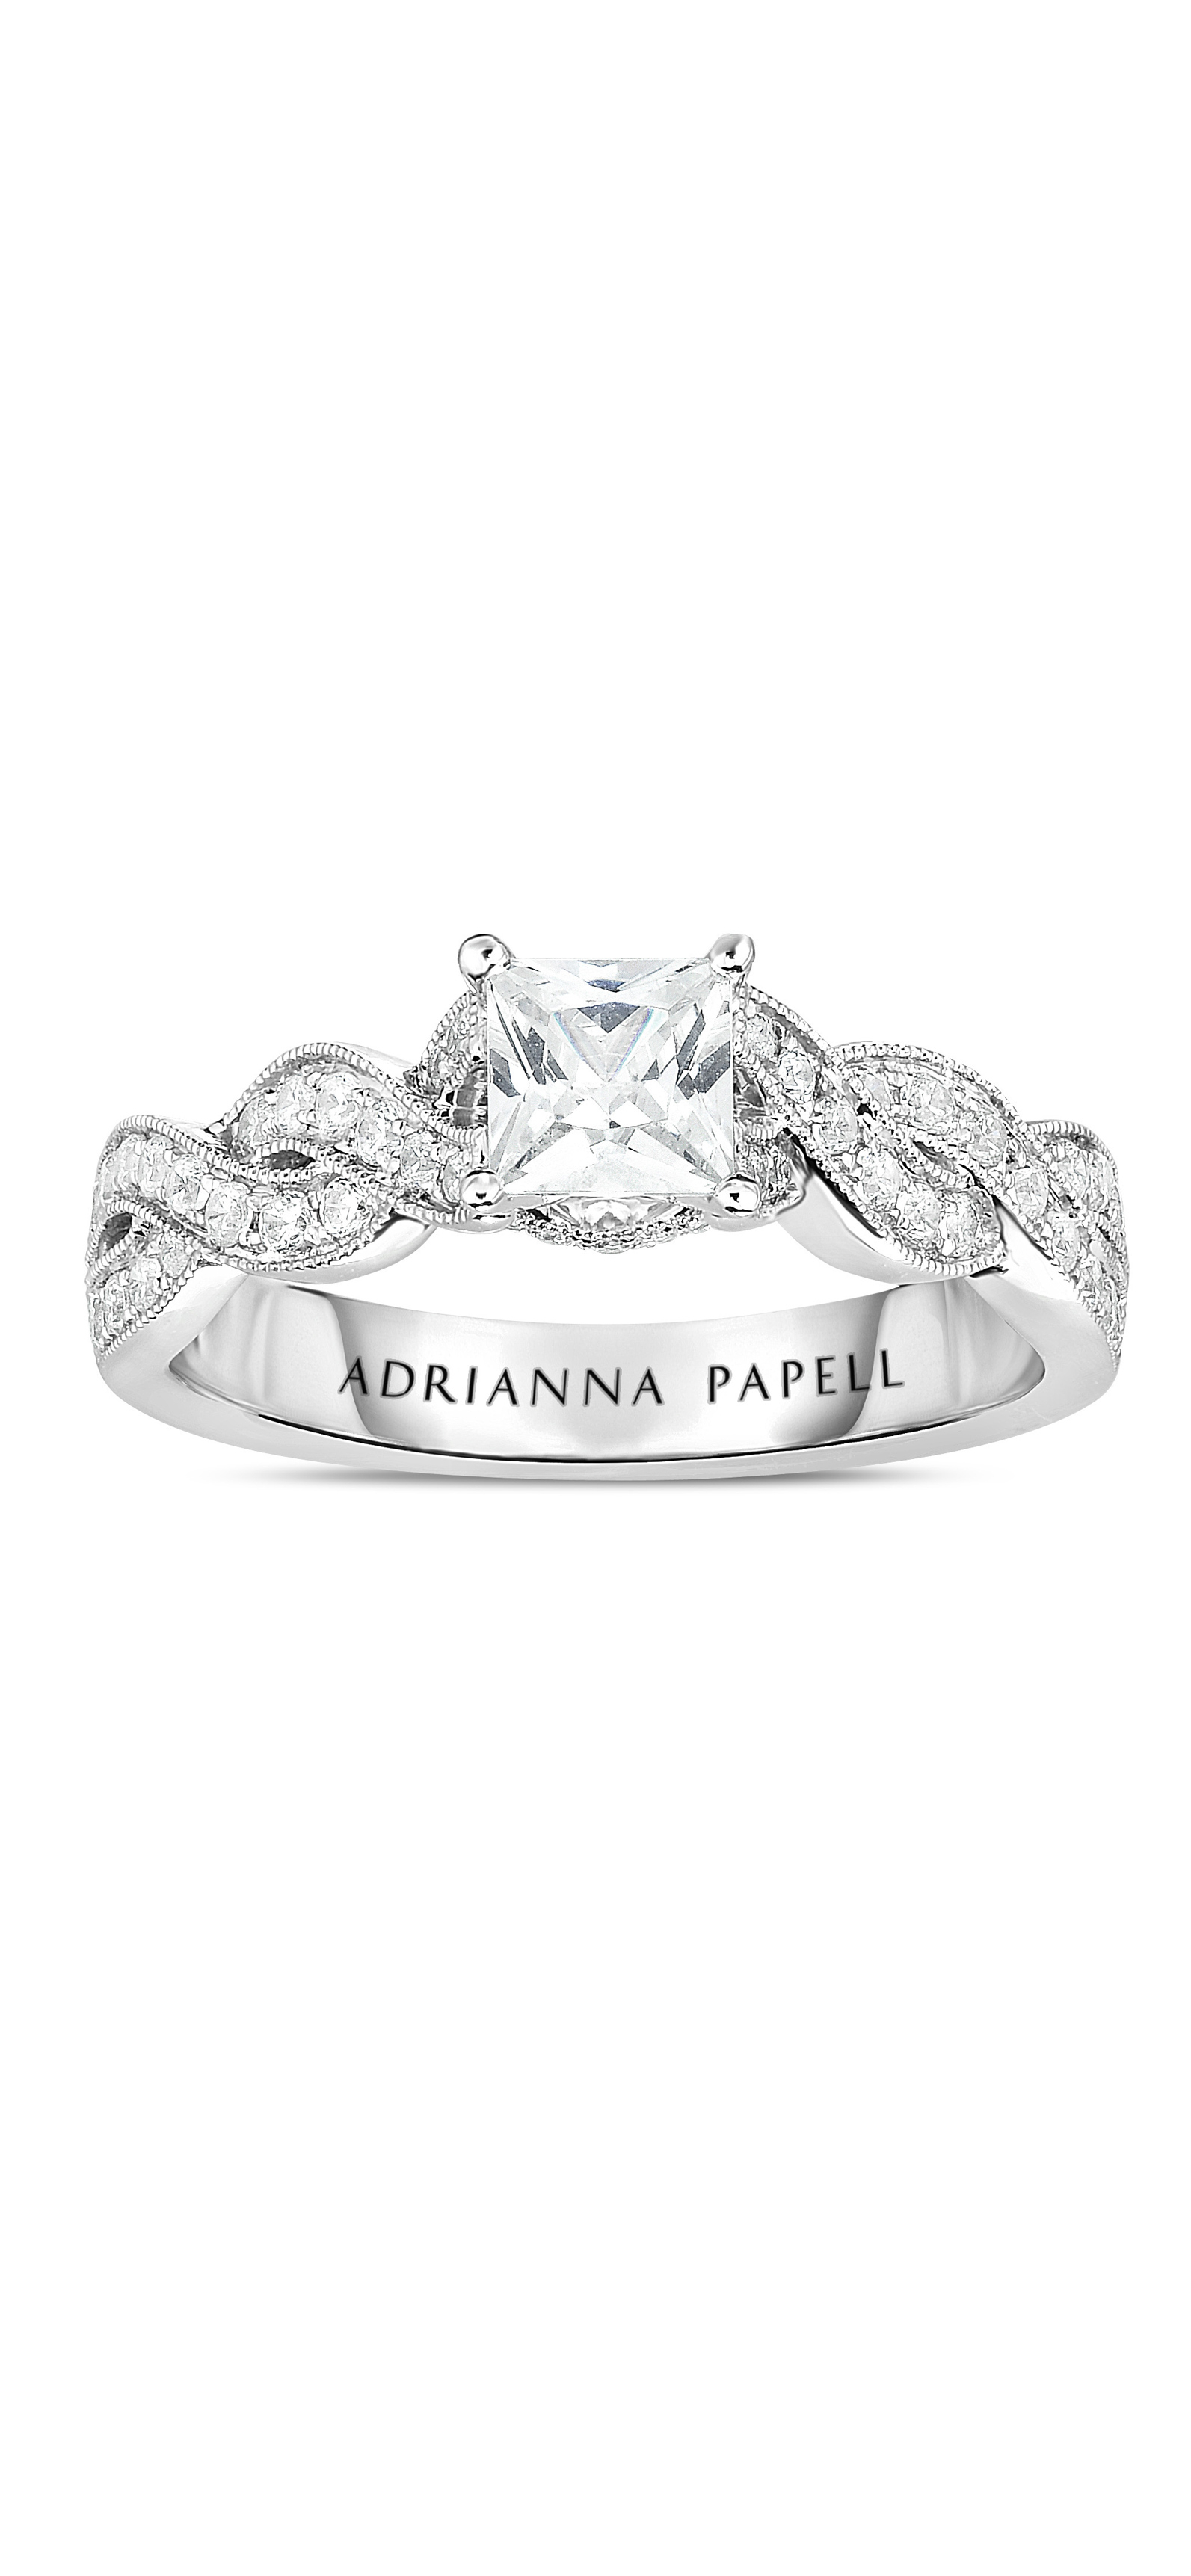 Princess Cut Diamond Engagement Ring With Infinity Twist In Pertaining To Most Current Certified Princess Cut Diamond Anniversary Bands In White Gold (View 19 of 25)